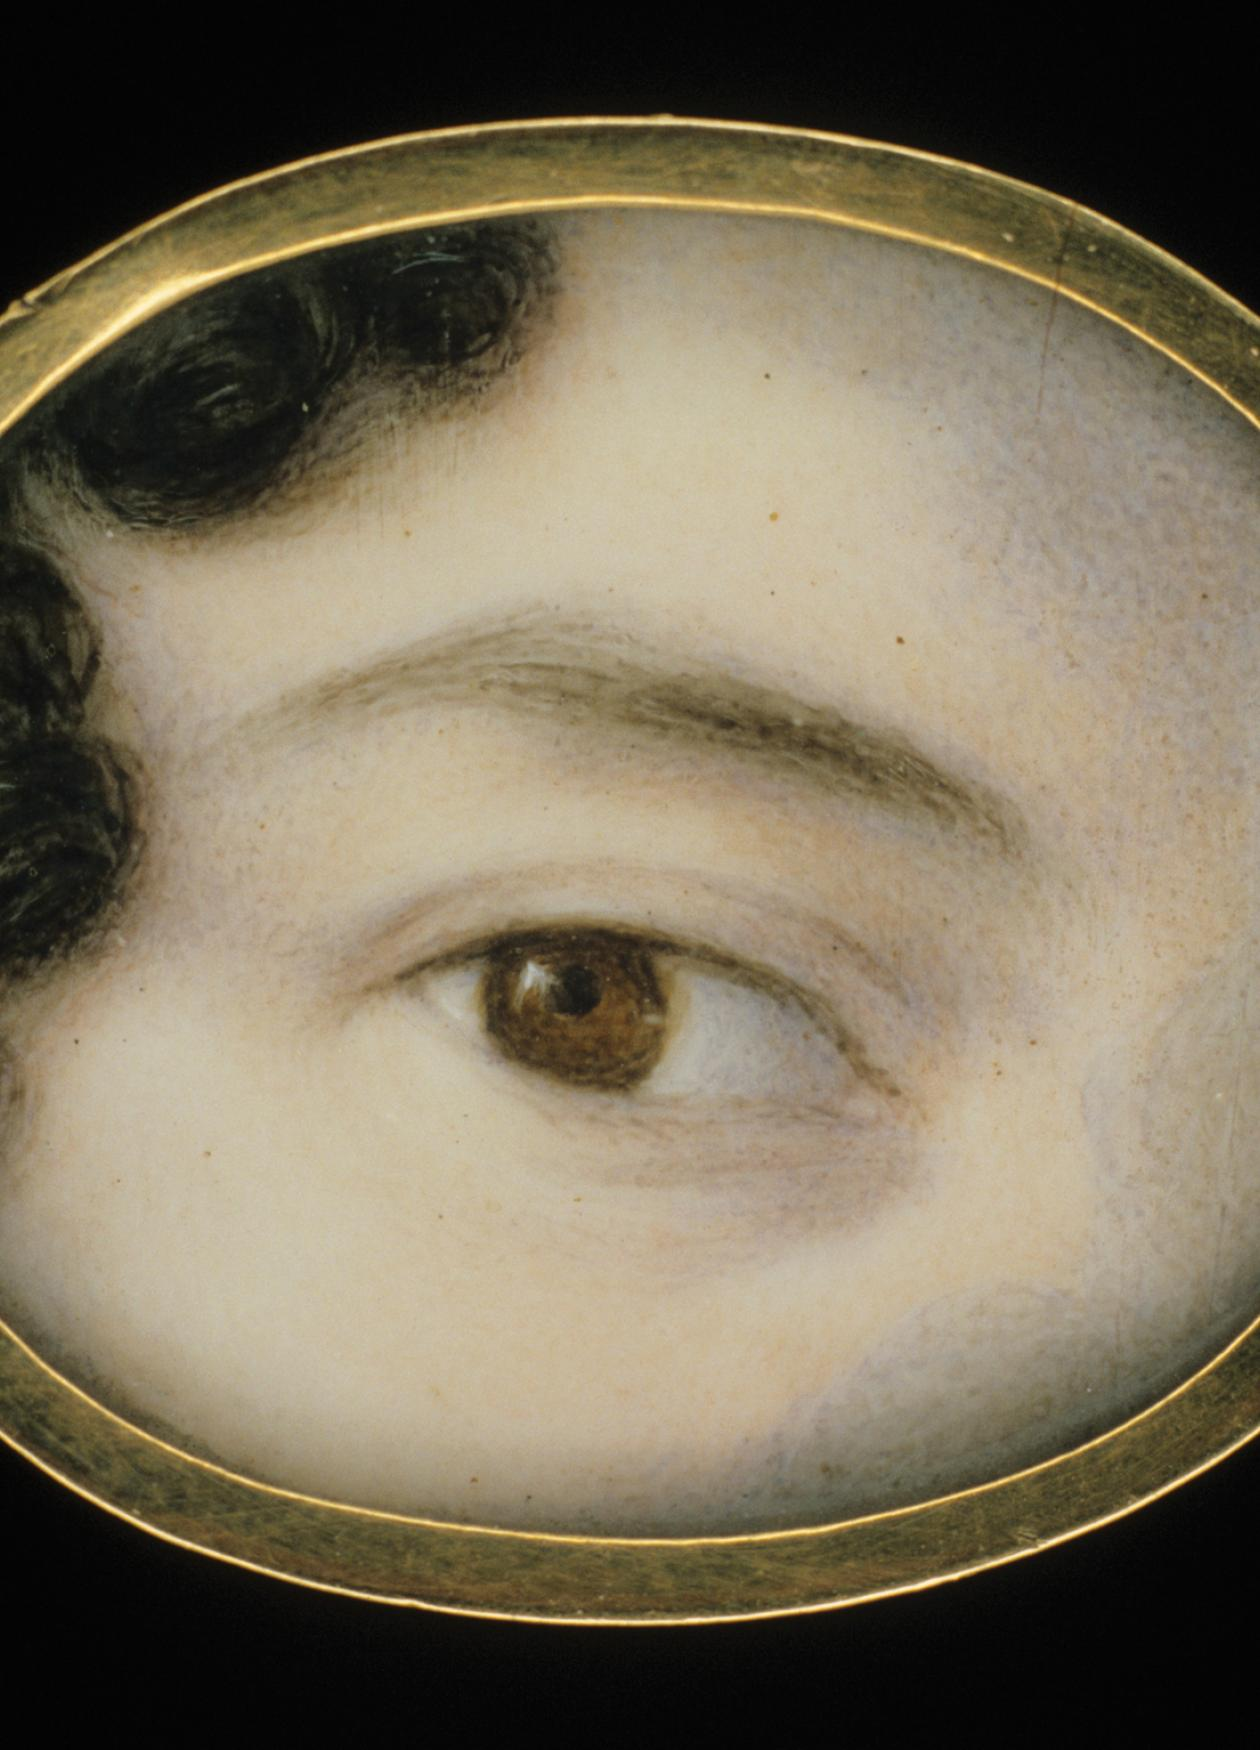 close up of a woman's brown eye, framed by a thin dark eyebrow and pale skin